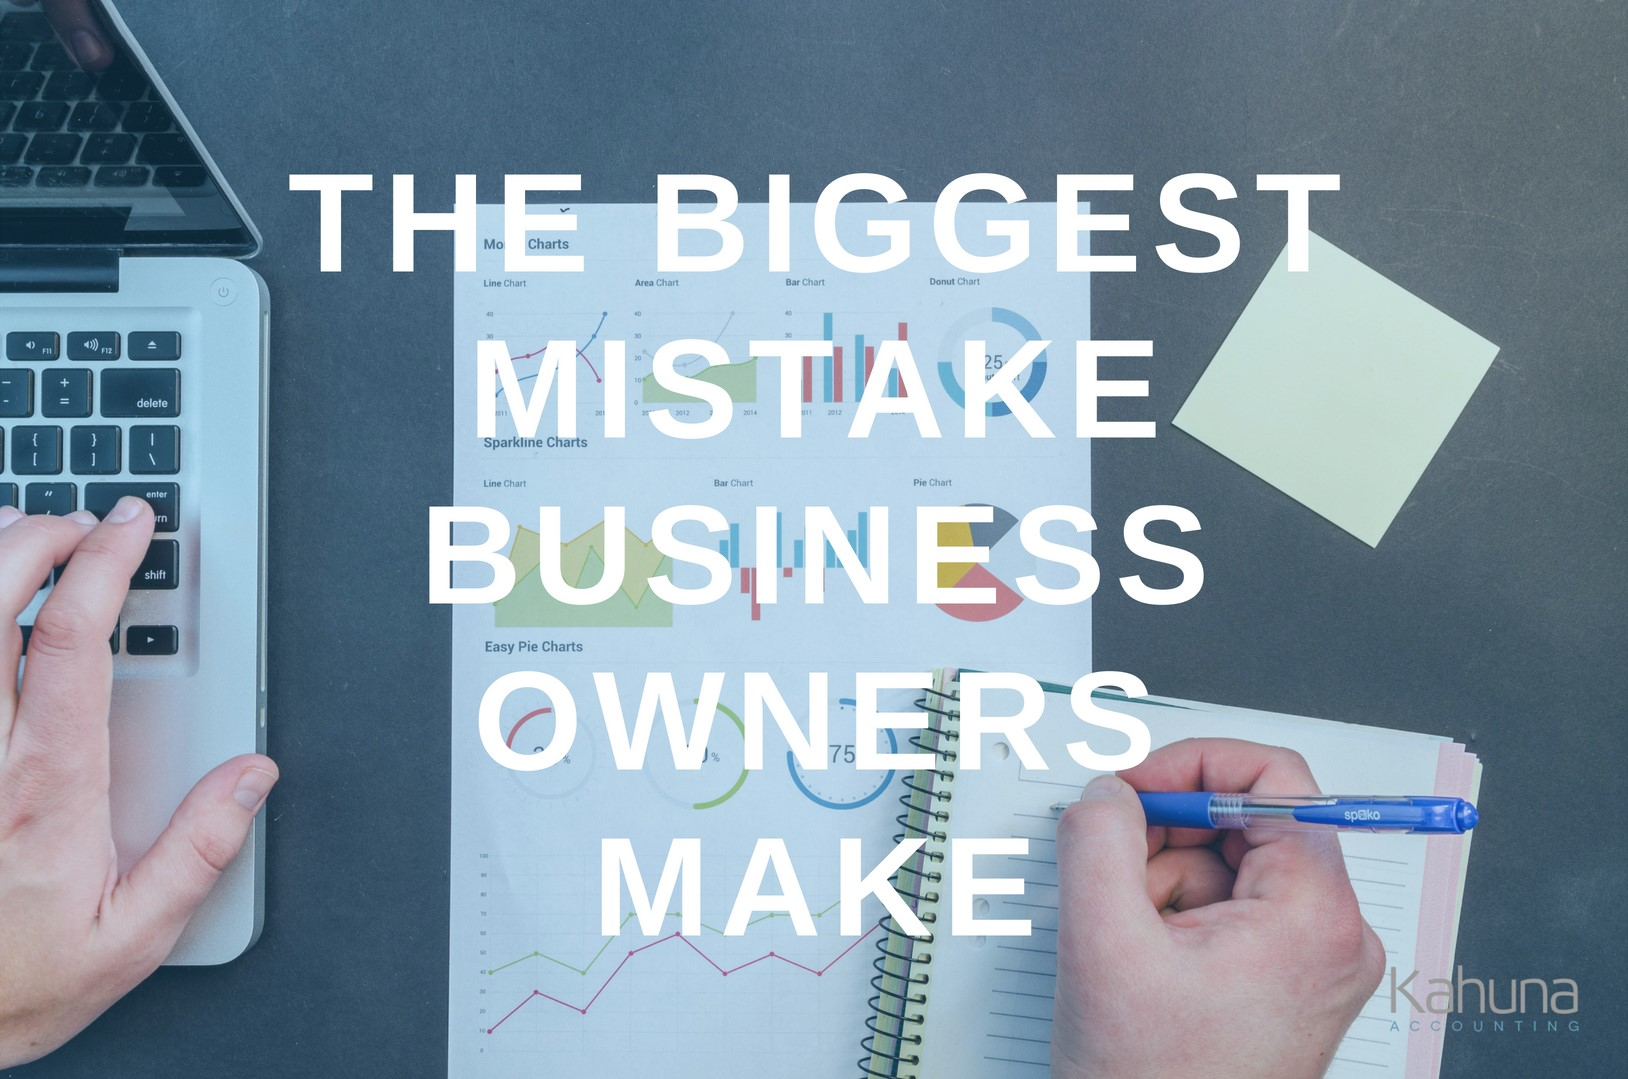 The Biggest Mistake Business Owners Make